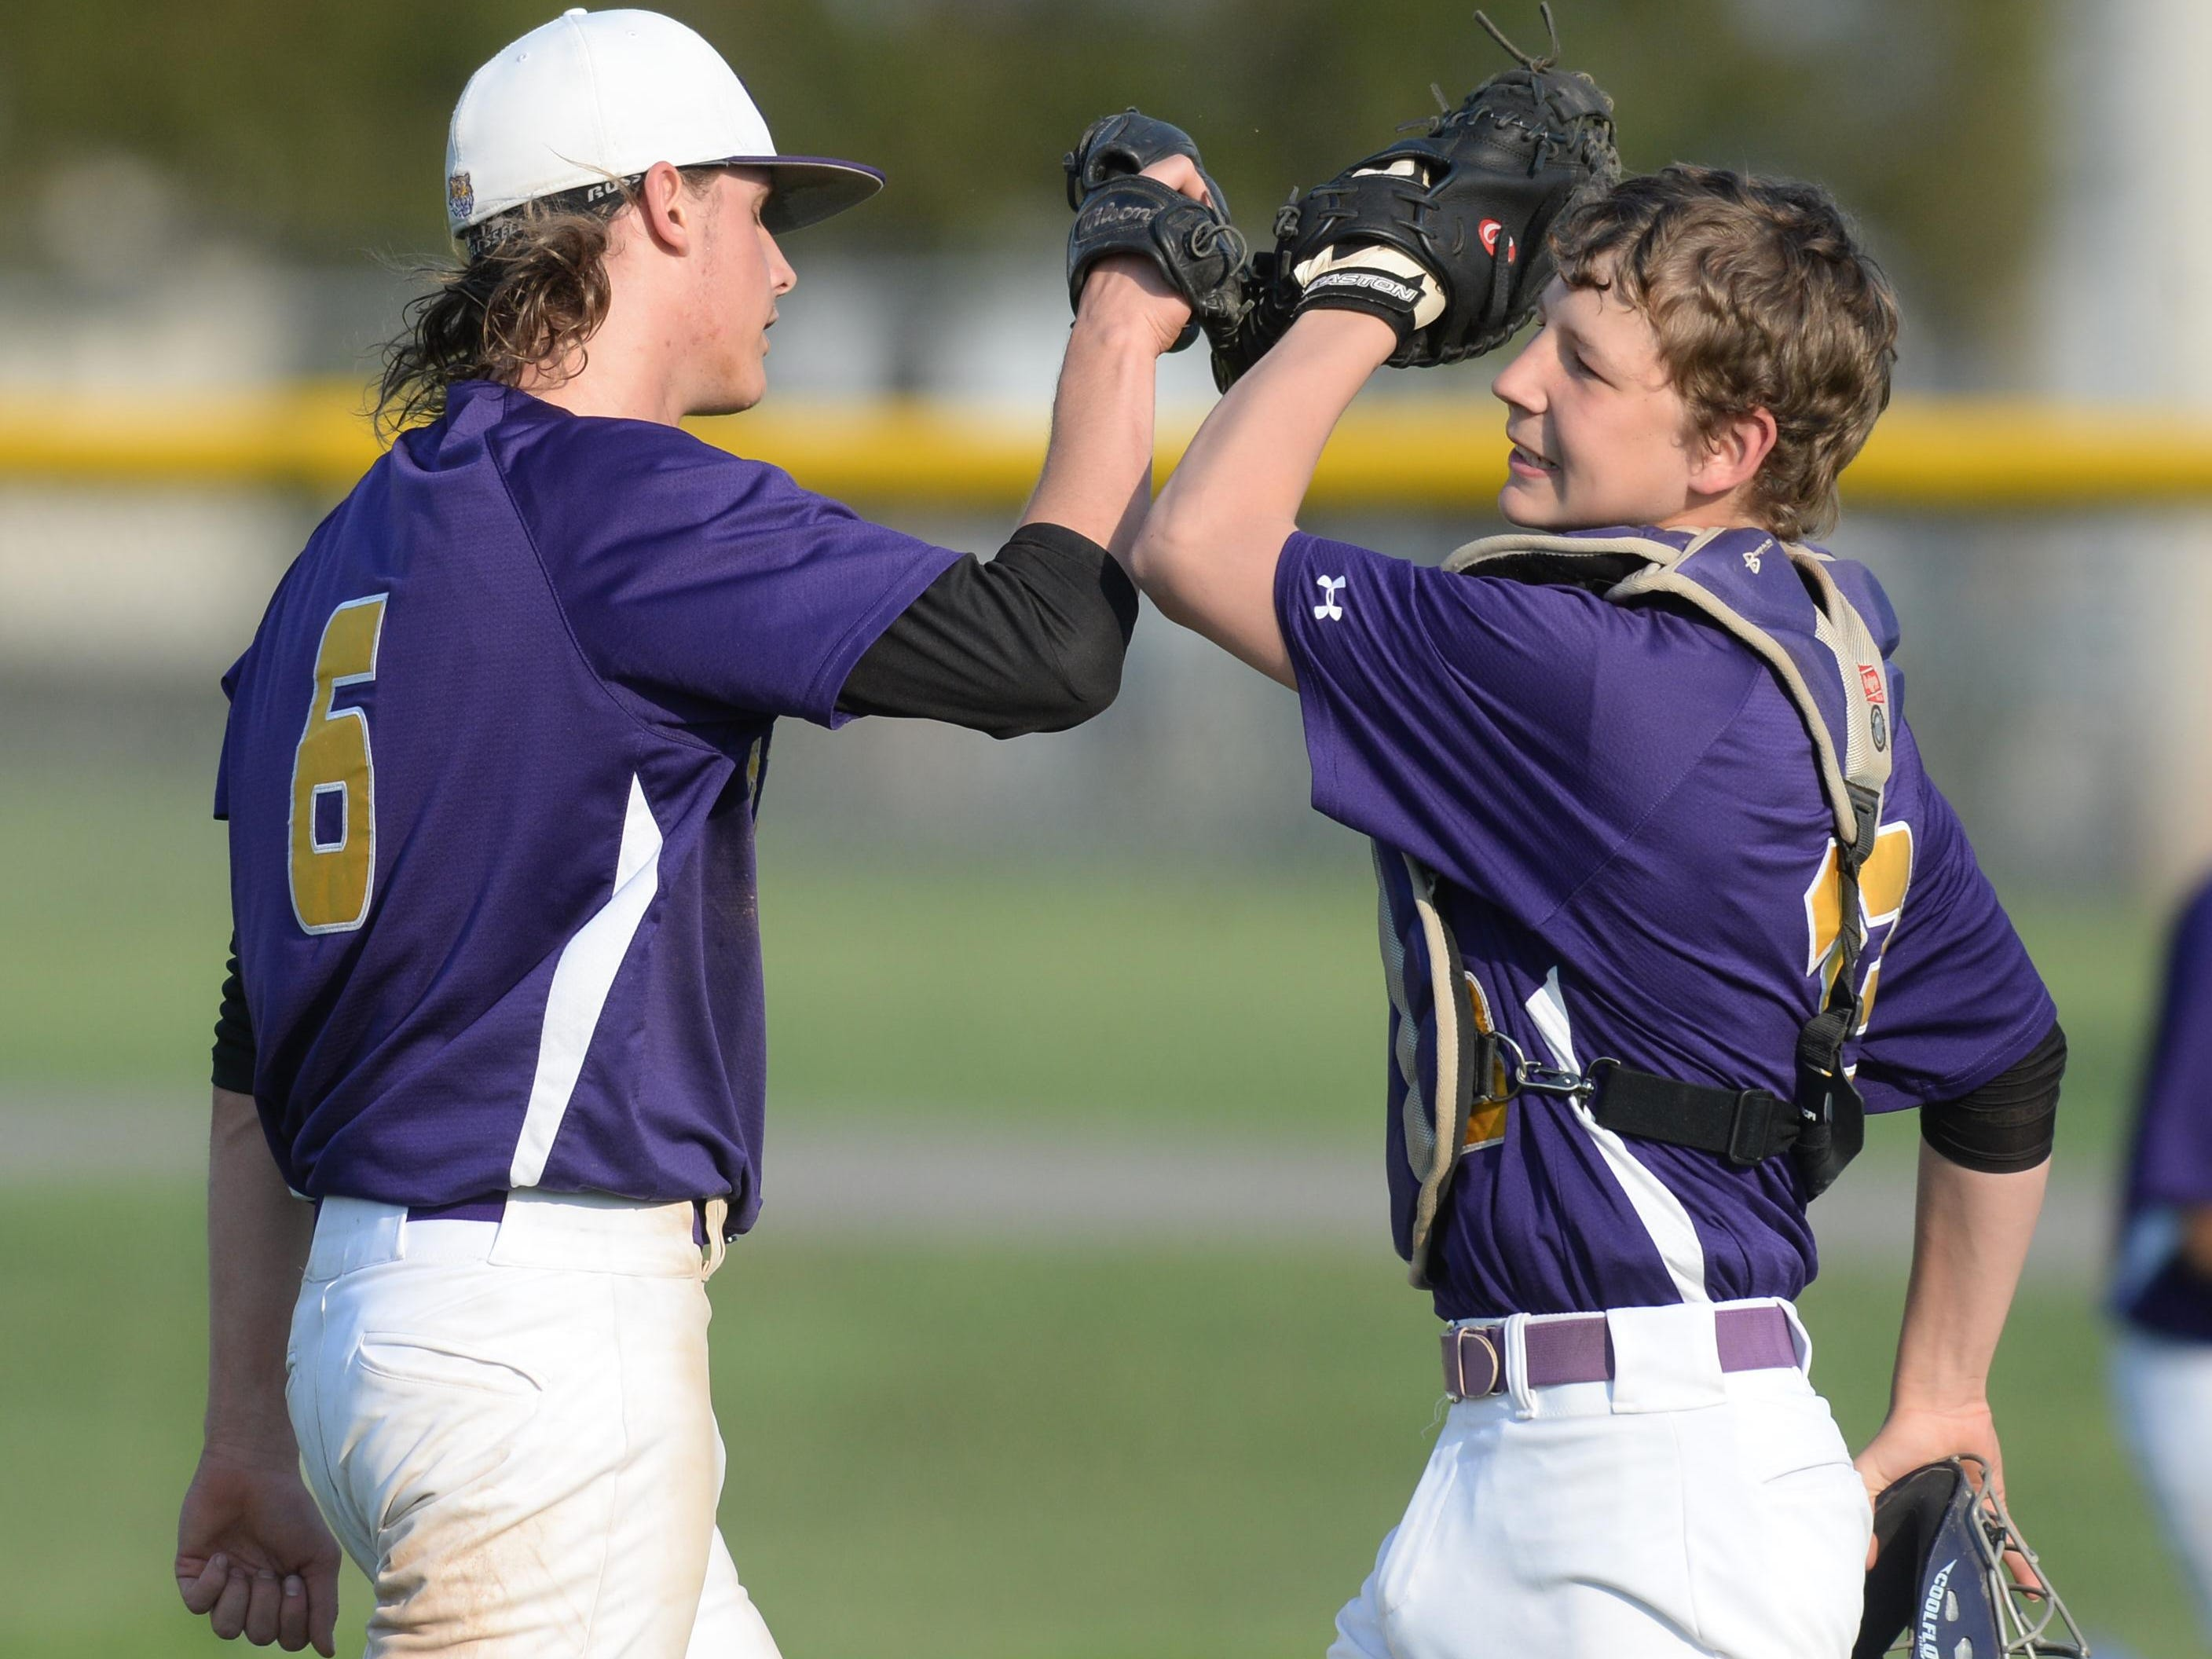 Hagerstown's Sam Reagan is greeted by catcher Cameron Purtha after a game. The Tigers, the defending TEC champion, will play Class A Sectional 56 next season.